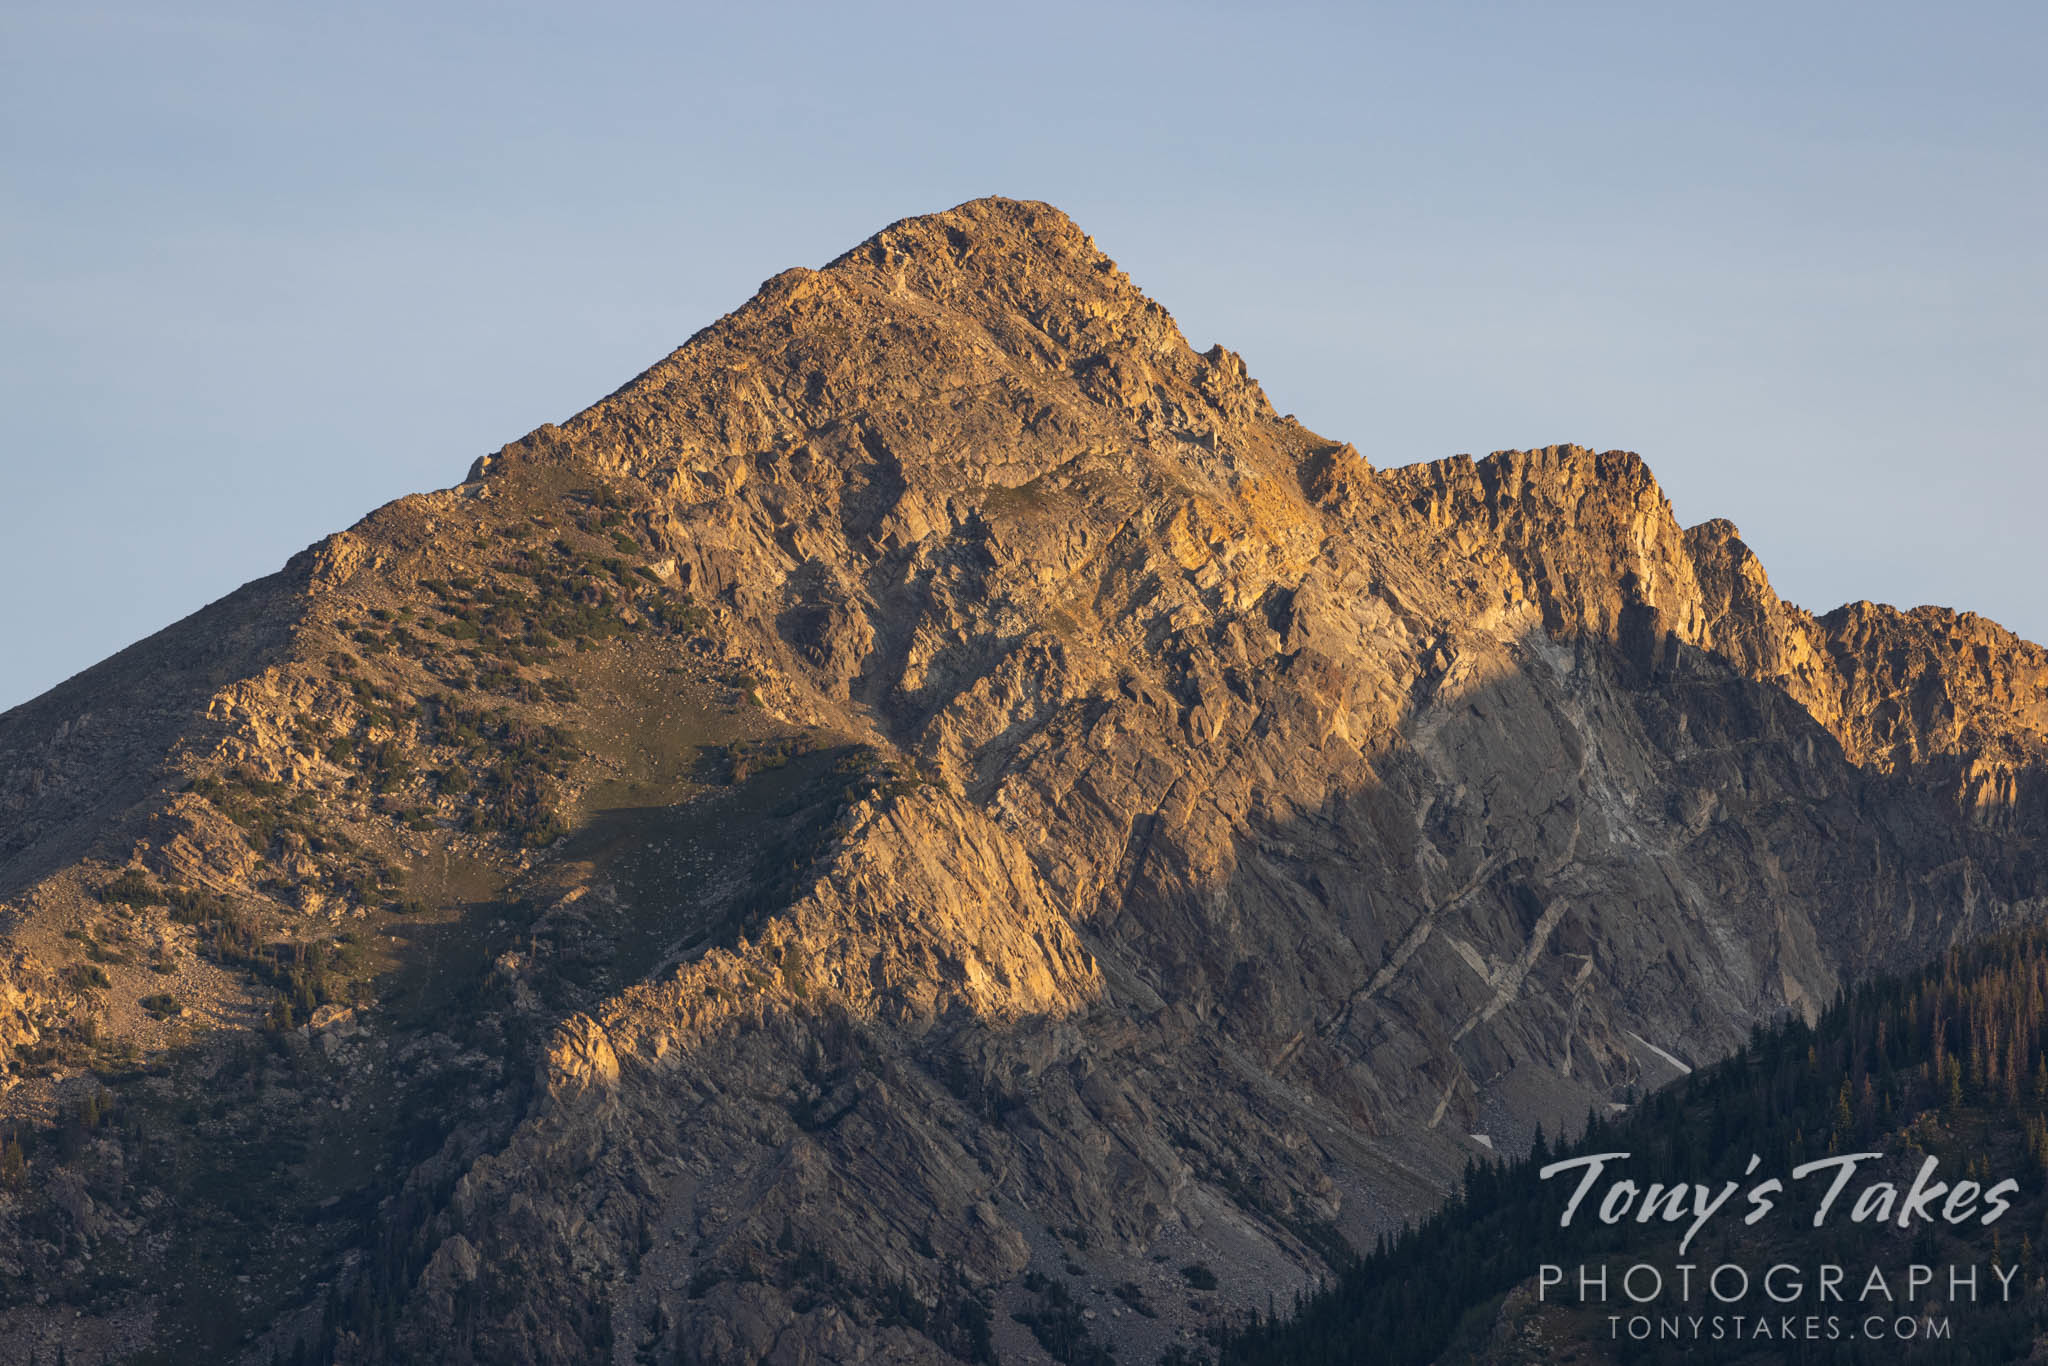 Mountain. Canon R5, Canon EF 100-400mm f/4.5-5.6L IS II USM @ 400mm, 1/400, f/5.6, ISO 320.